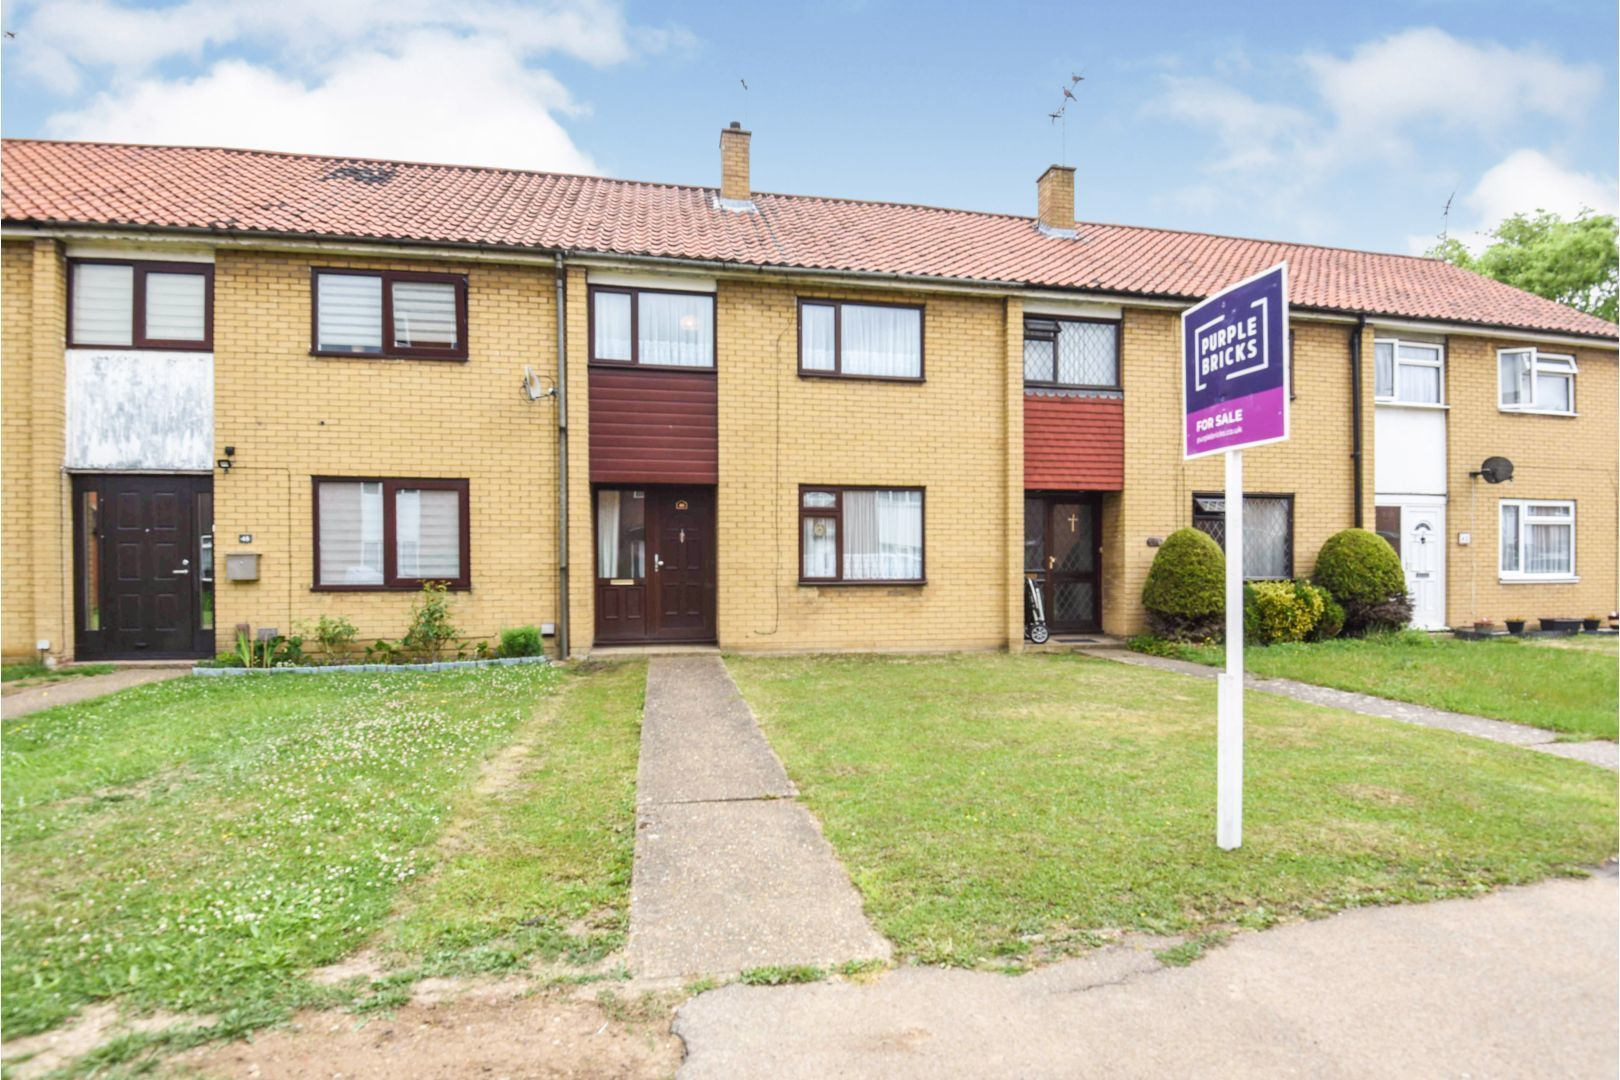 3 Bedroom Terraced House For Sale Long Lynderswood Basildon Ss Ss15 5ay Thehouseshop Com